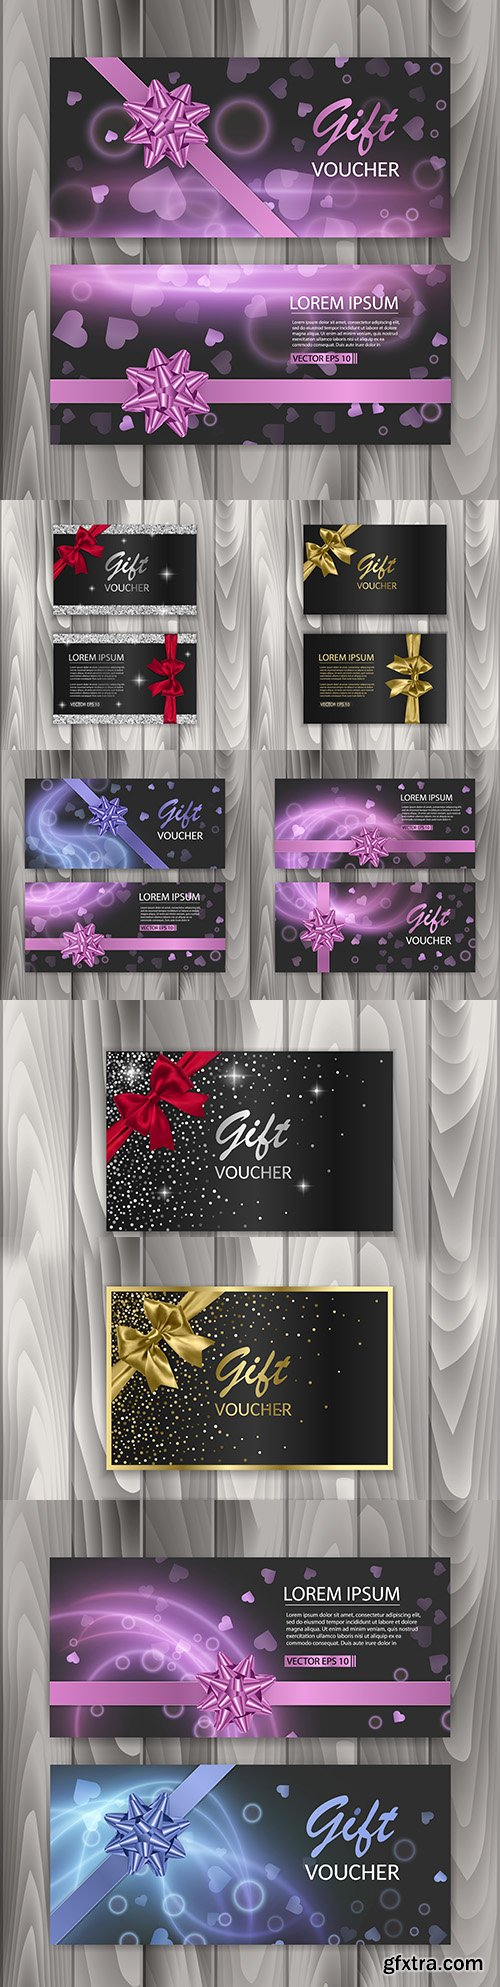 Voucher gift certificate and banners with abstract design